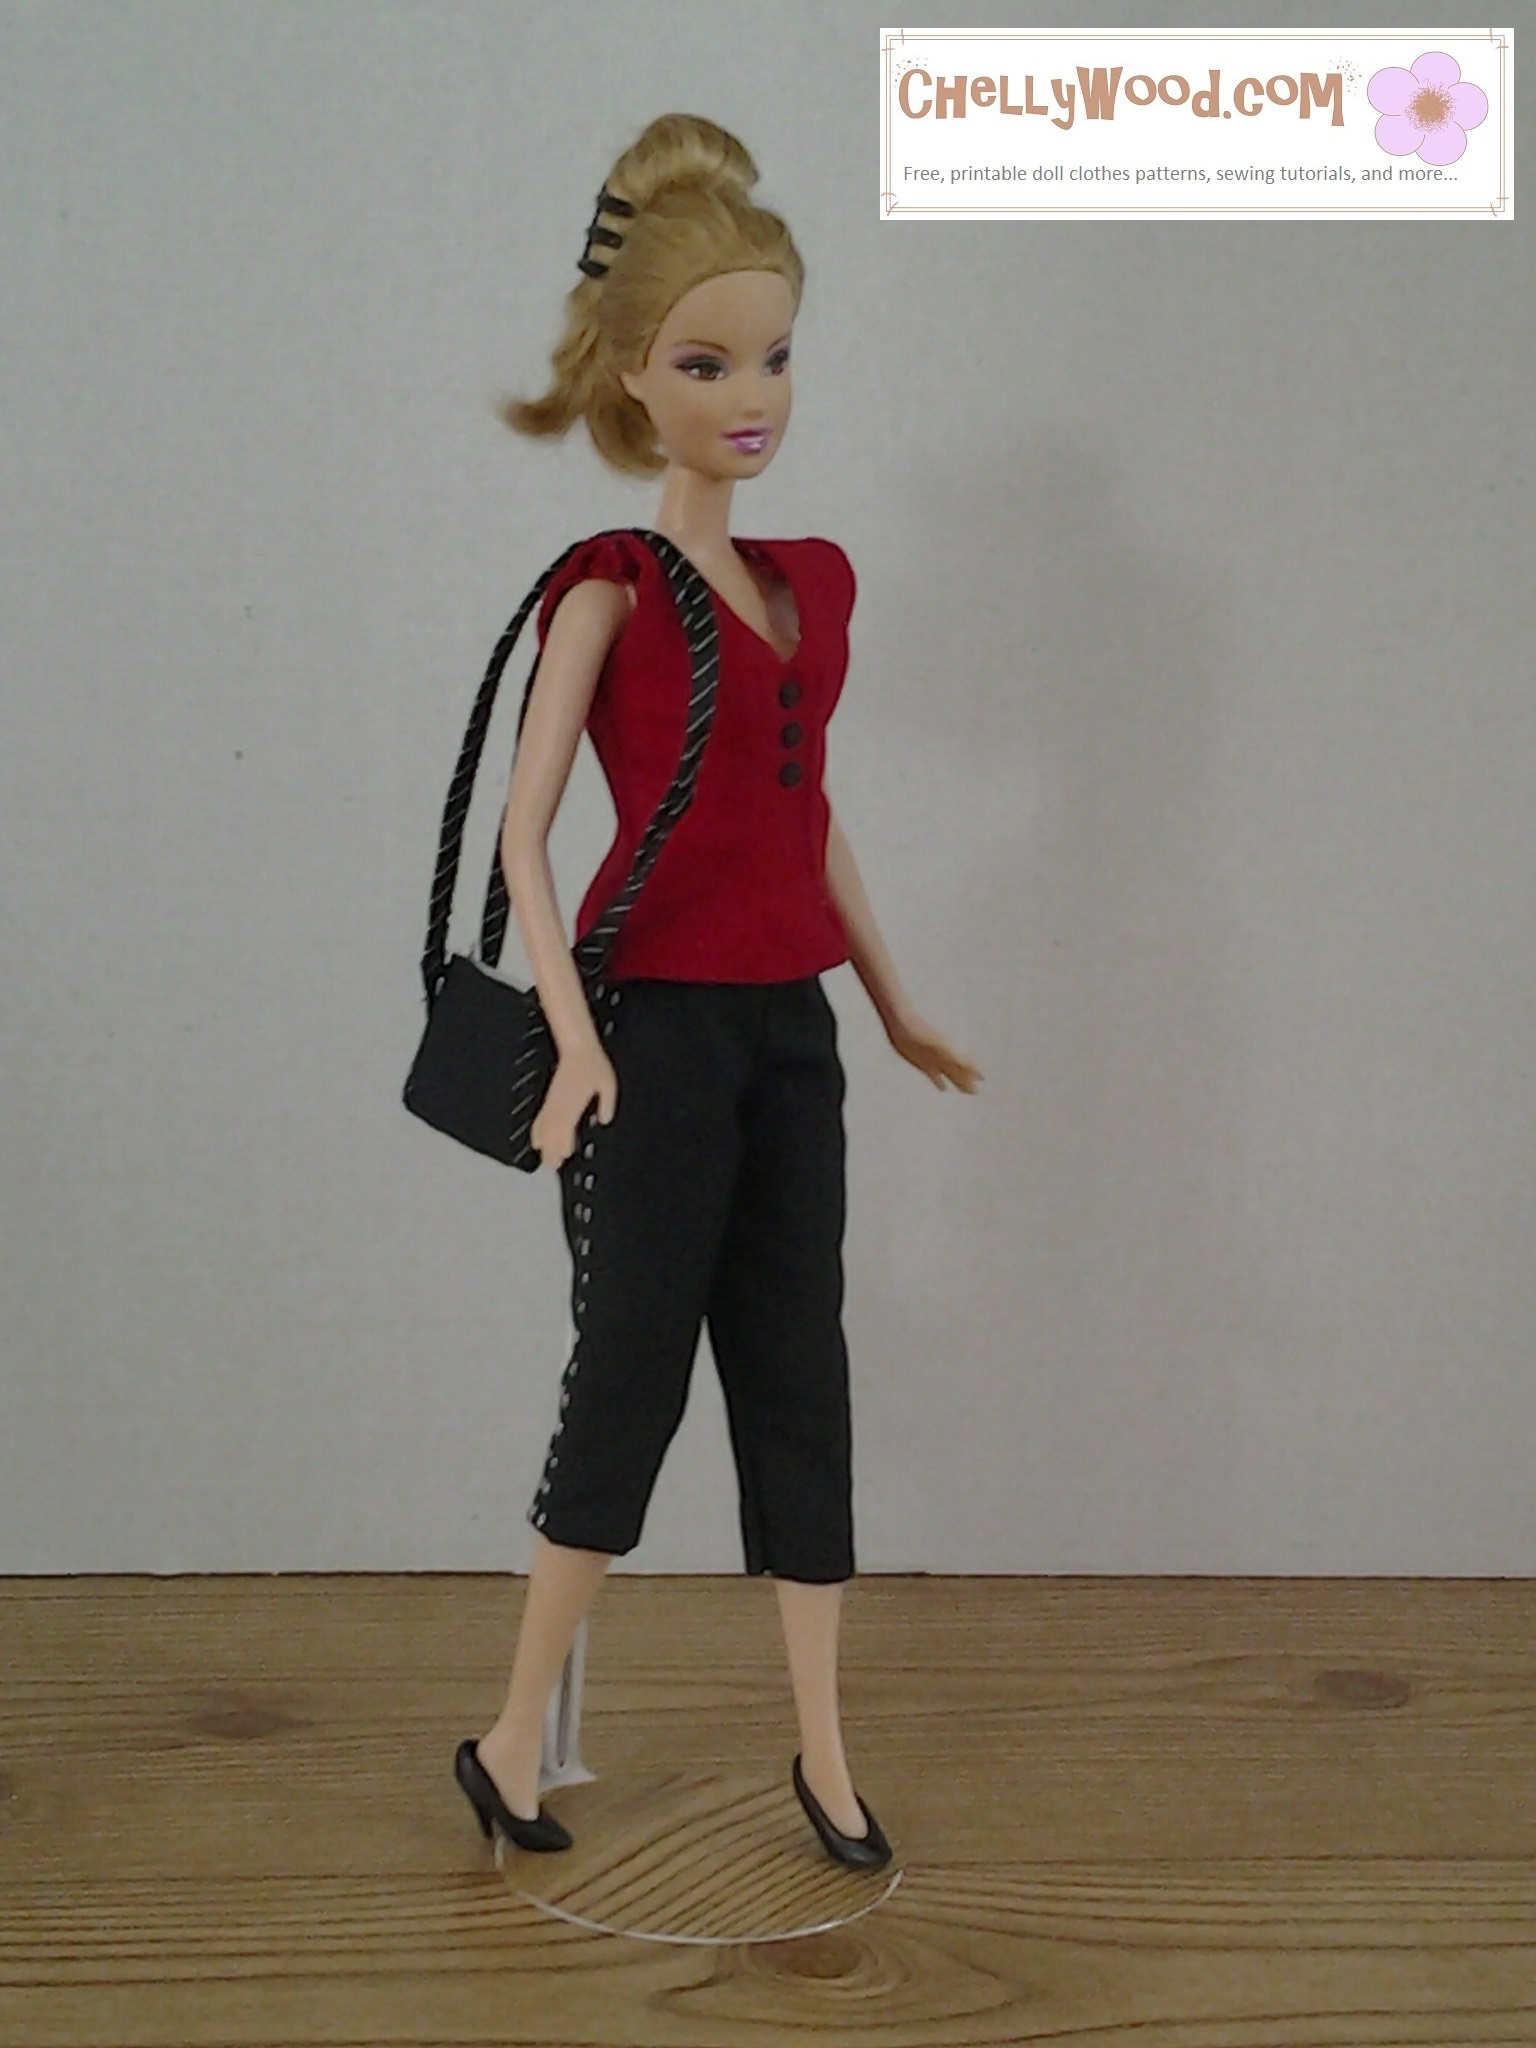 Visit ChellyWood.com for free, printable sewing patterns for dolls of many shapes and sizes. Image shows fashion doll wearing hand-made capri pants, sleeveless summer shirt, and carrying a strappy purse. If you'd like to make this outfit, please click on the link in the caption. It will take you to the page with the free patterns and tutorial videos for making this summer outfit.